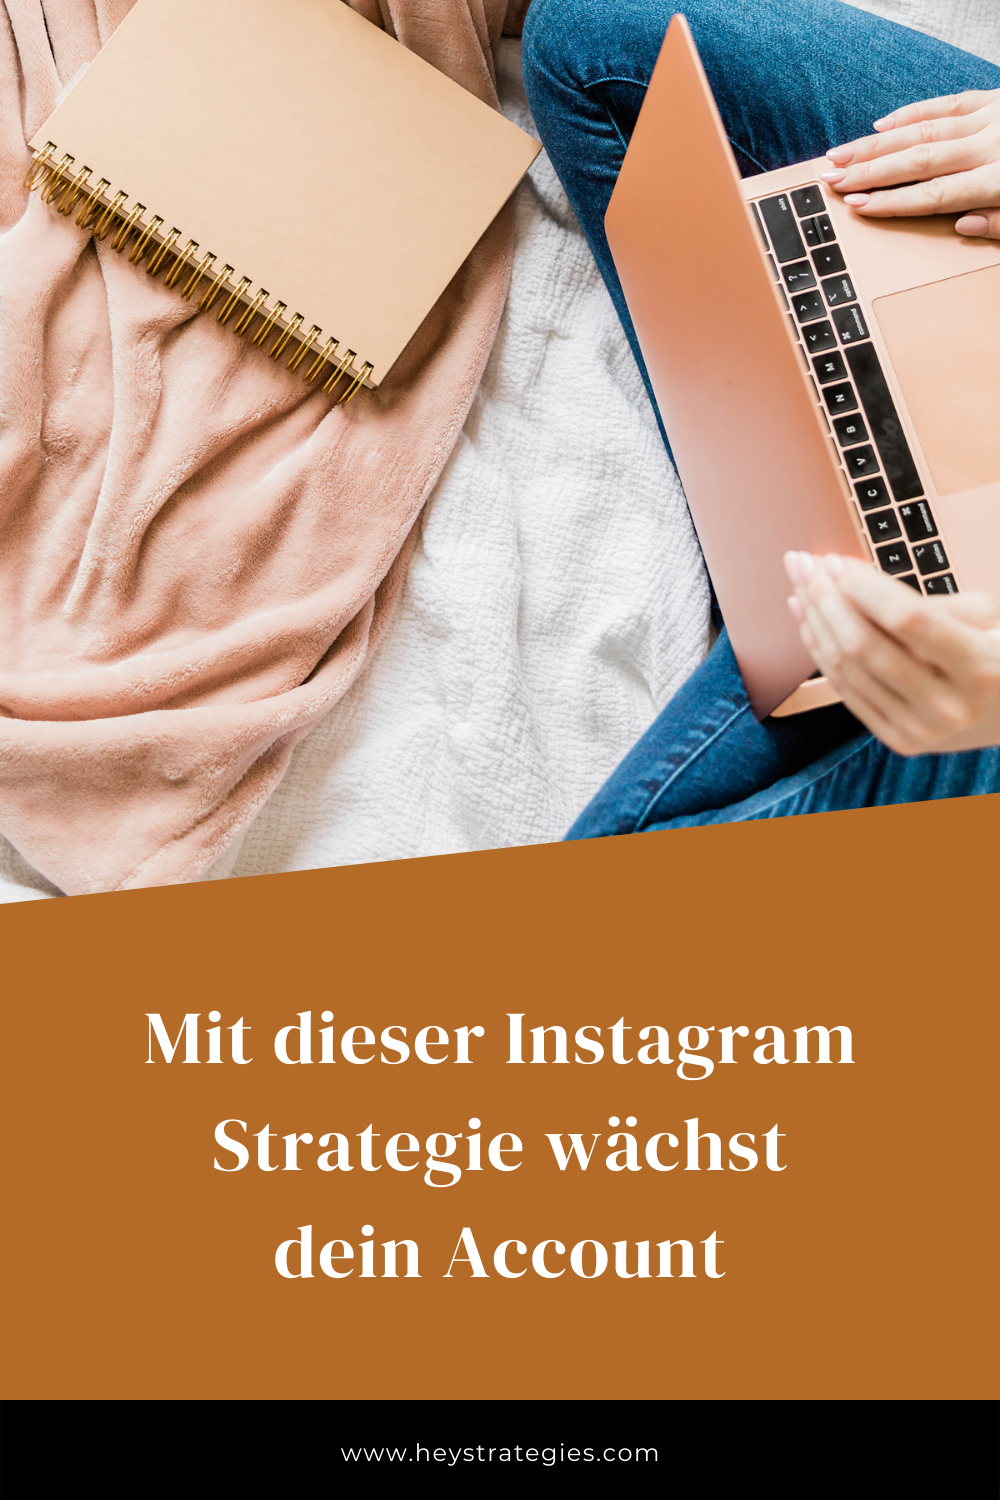 hey strategies - Mit dieser Instagram Strategie wächst dein Account